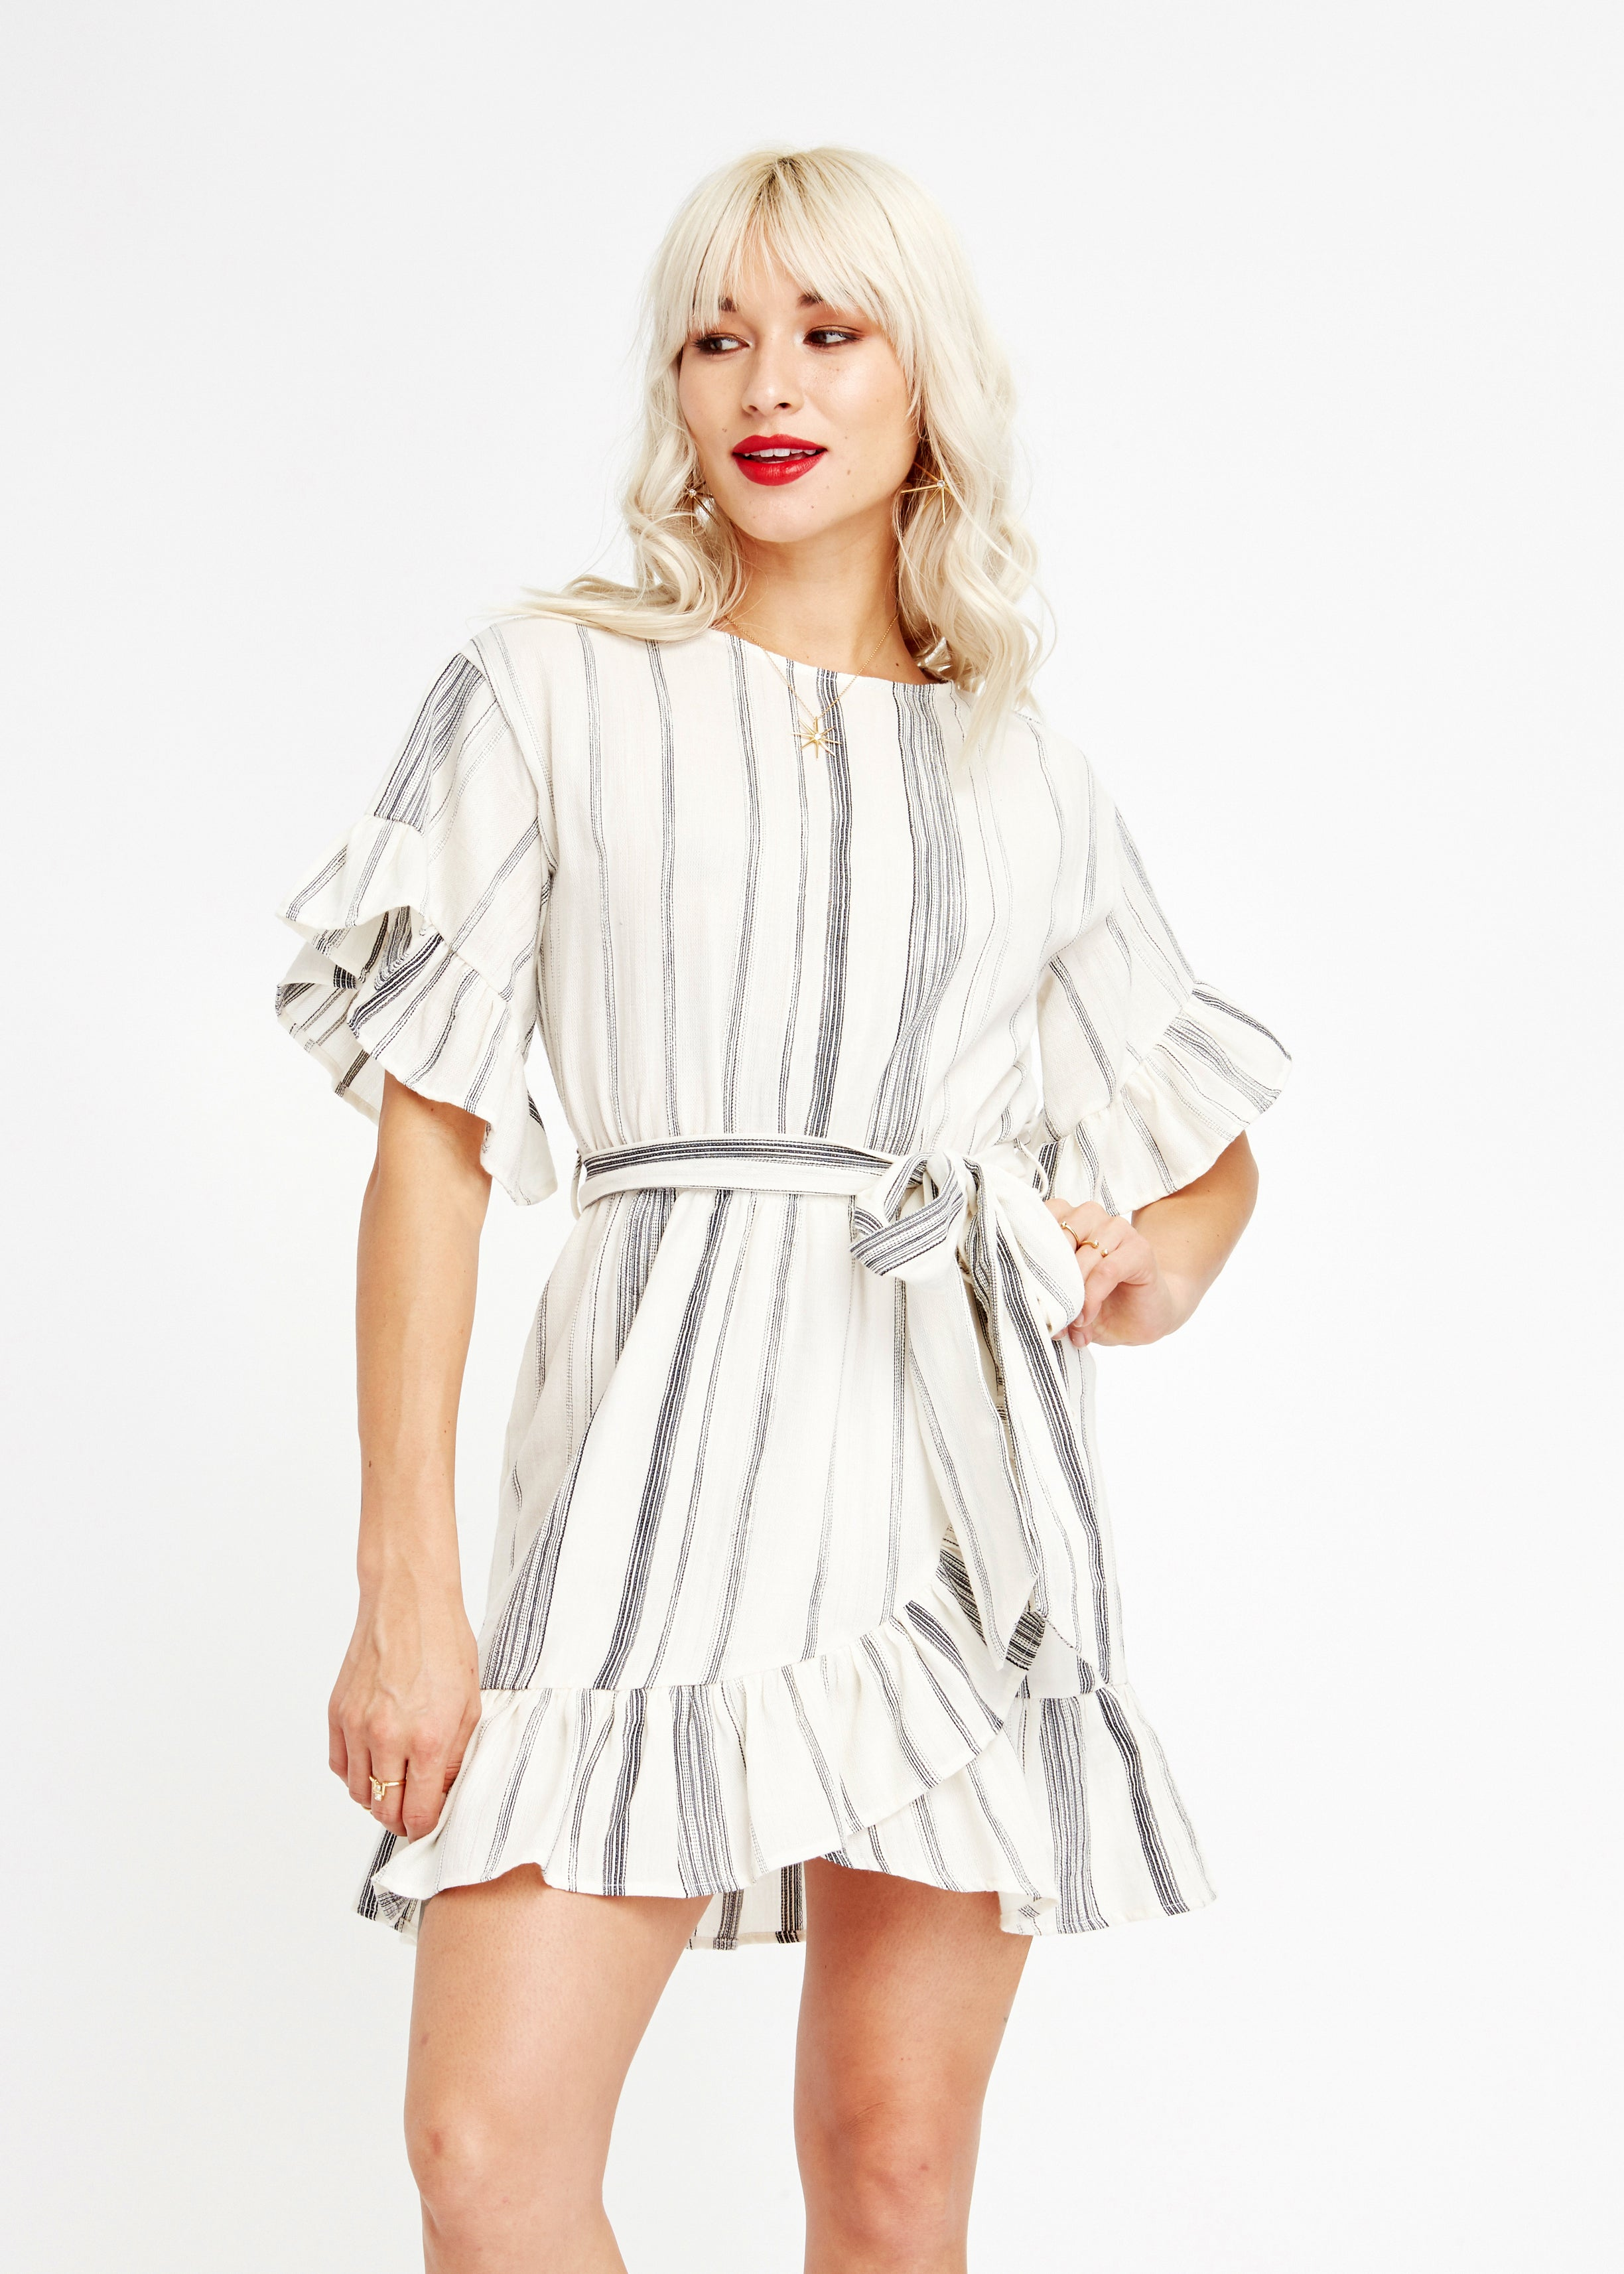 Marbella Ruffle Mini Dress